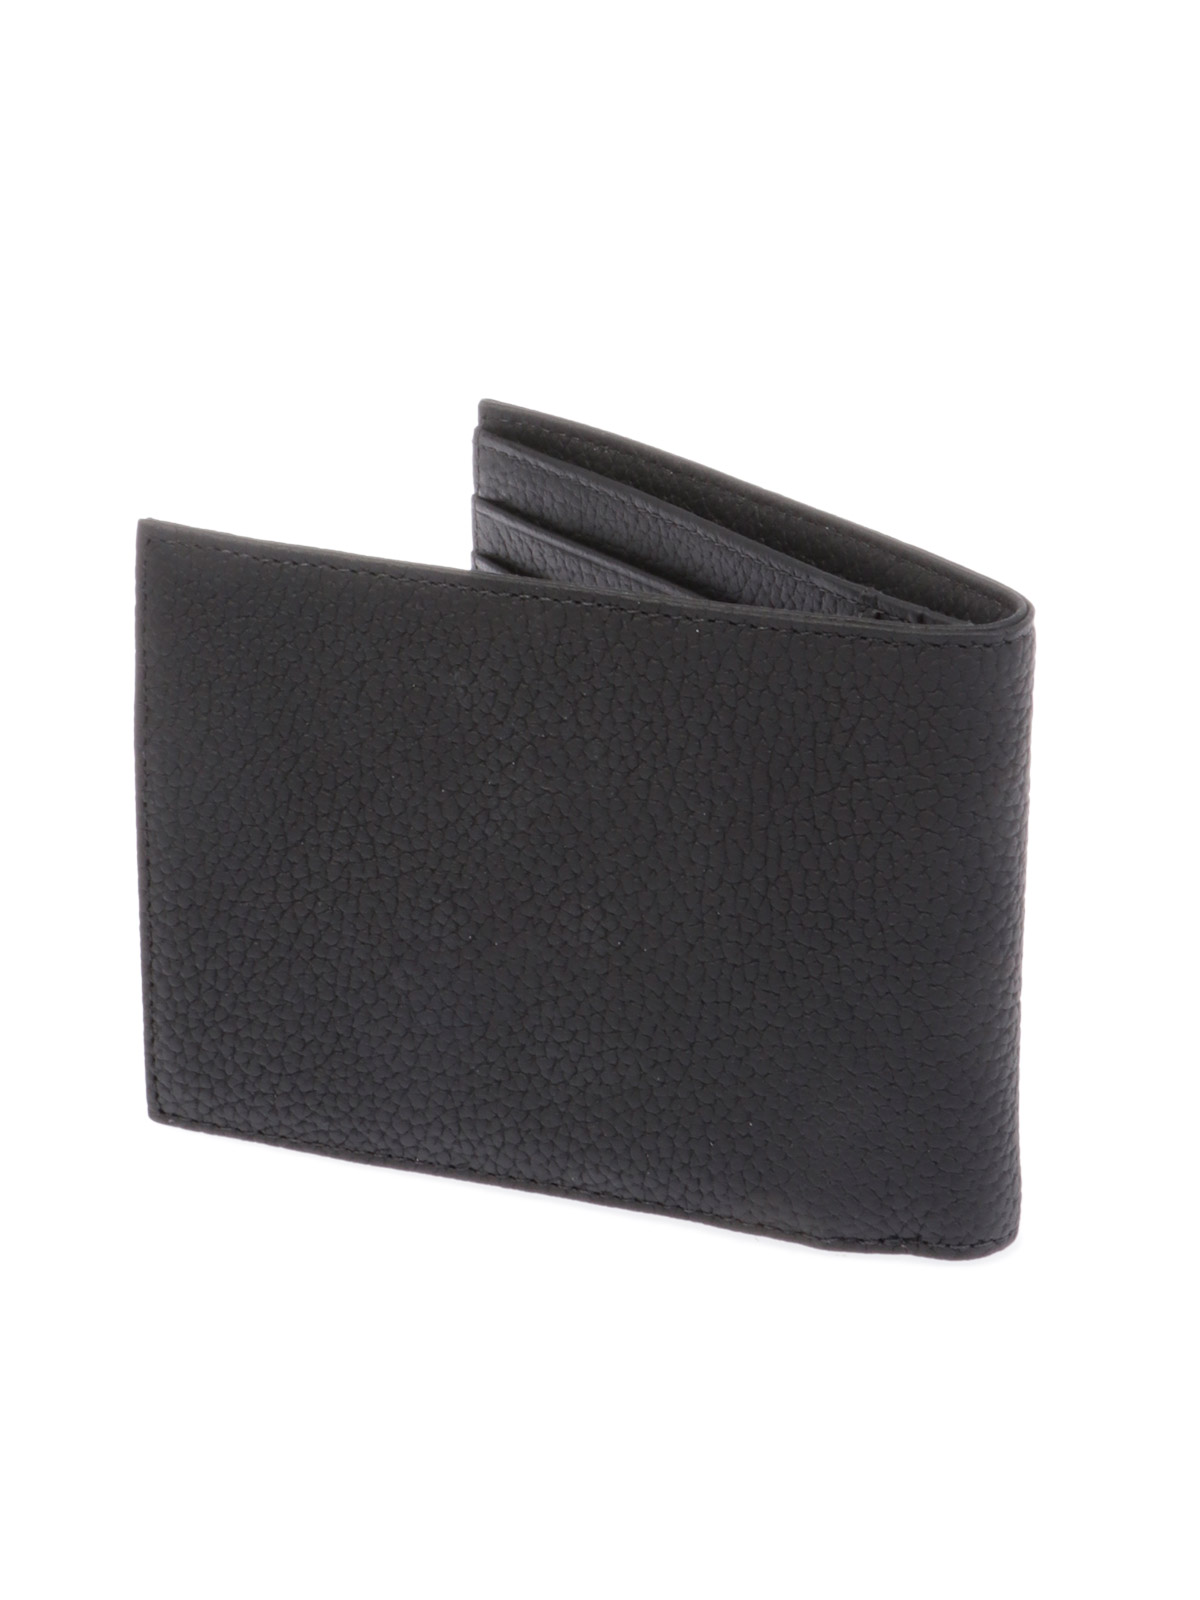 Picture of EMPORIO ARMANI | Men's Leather Wallet